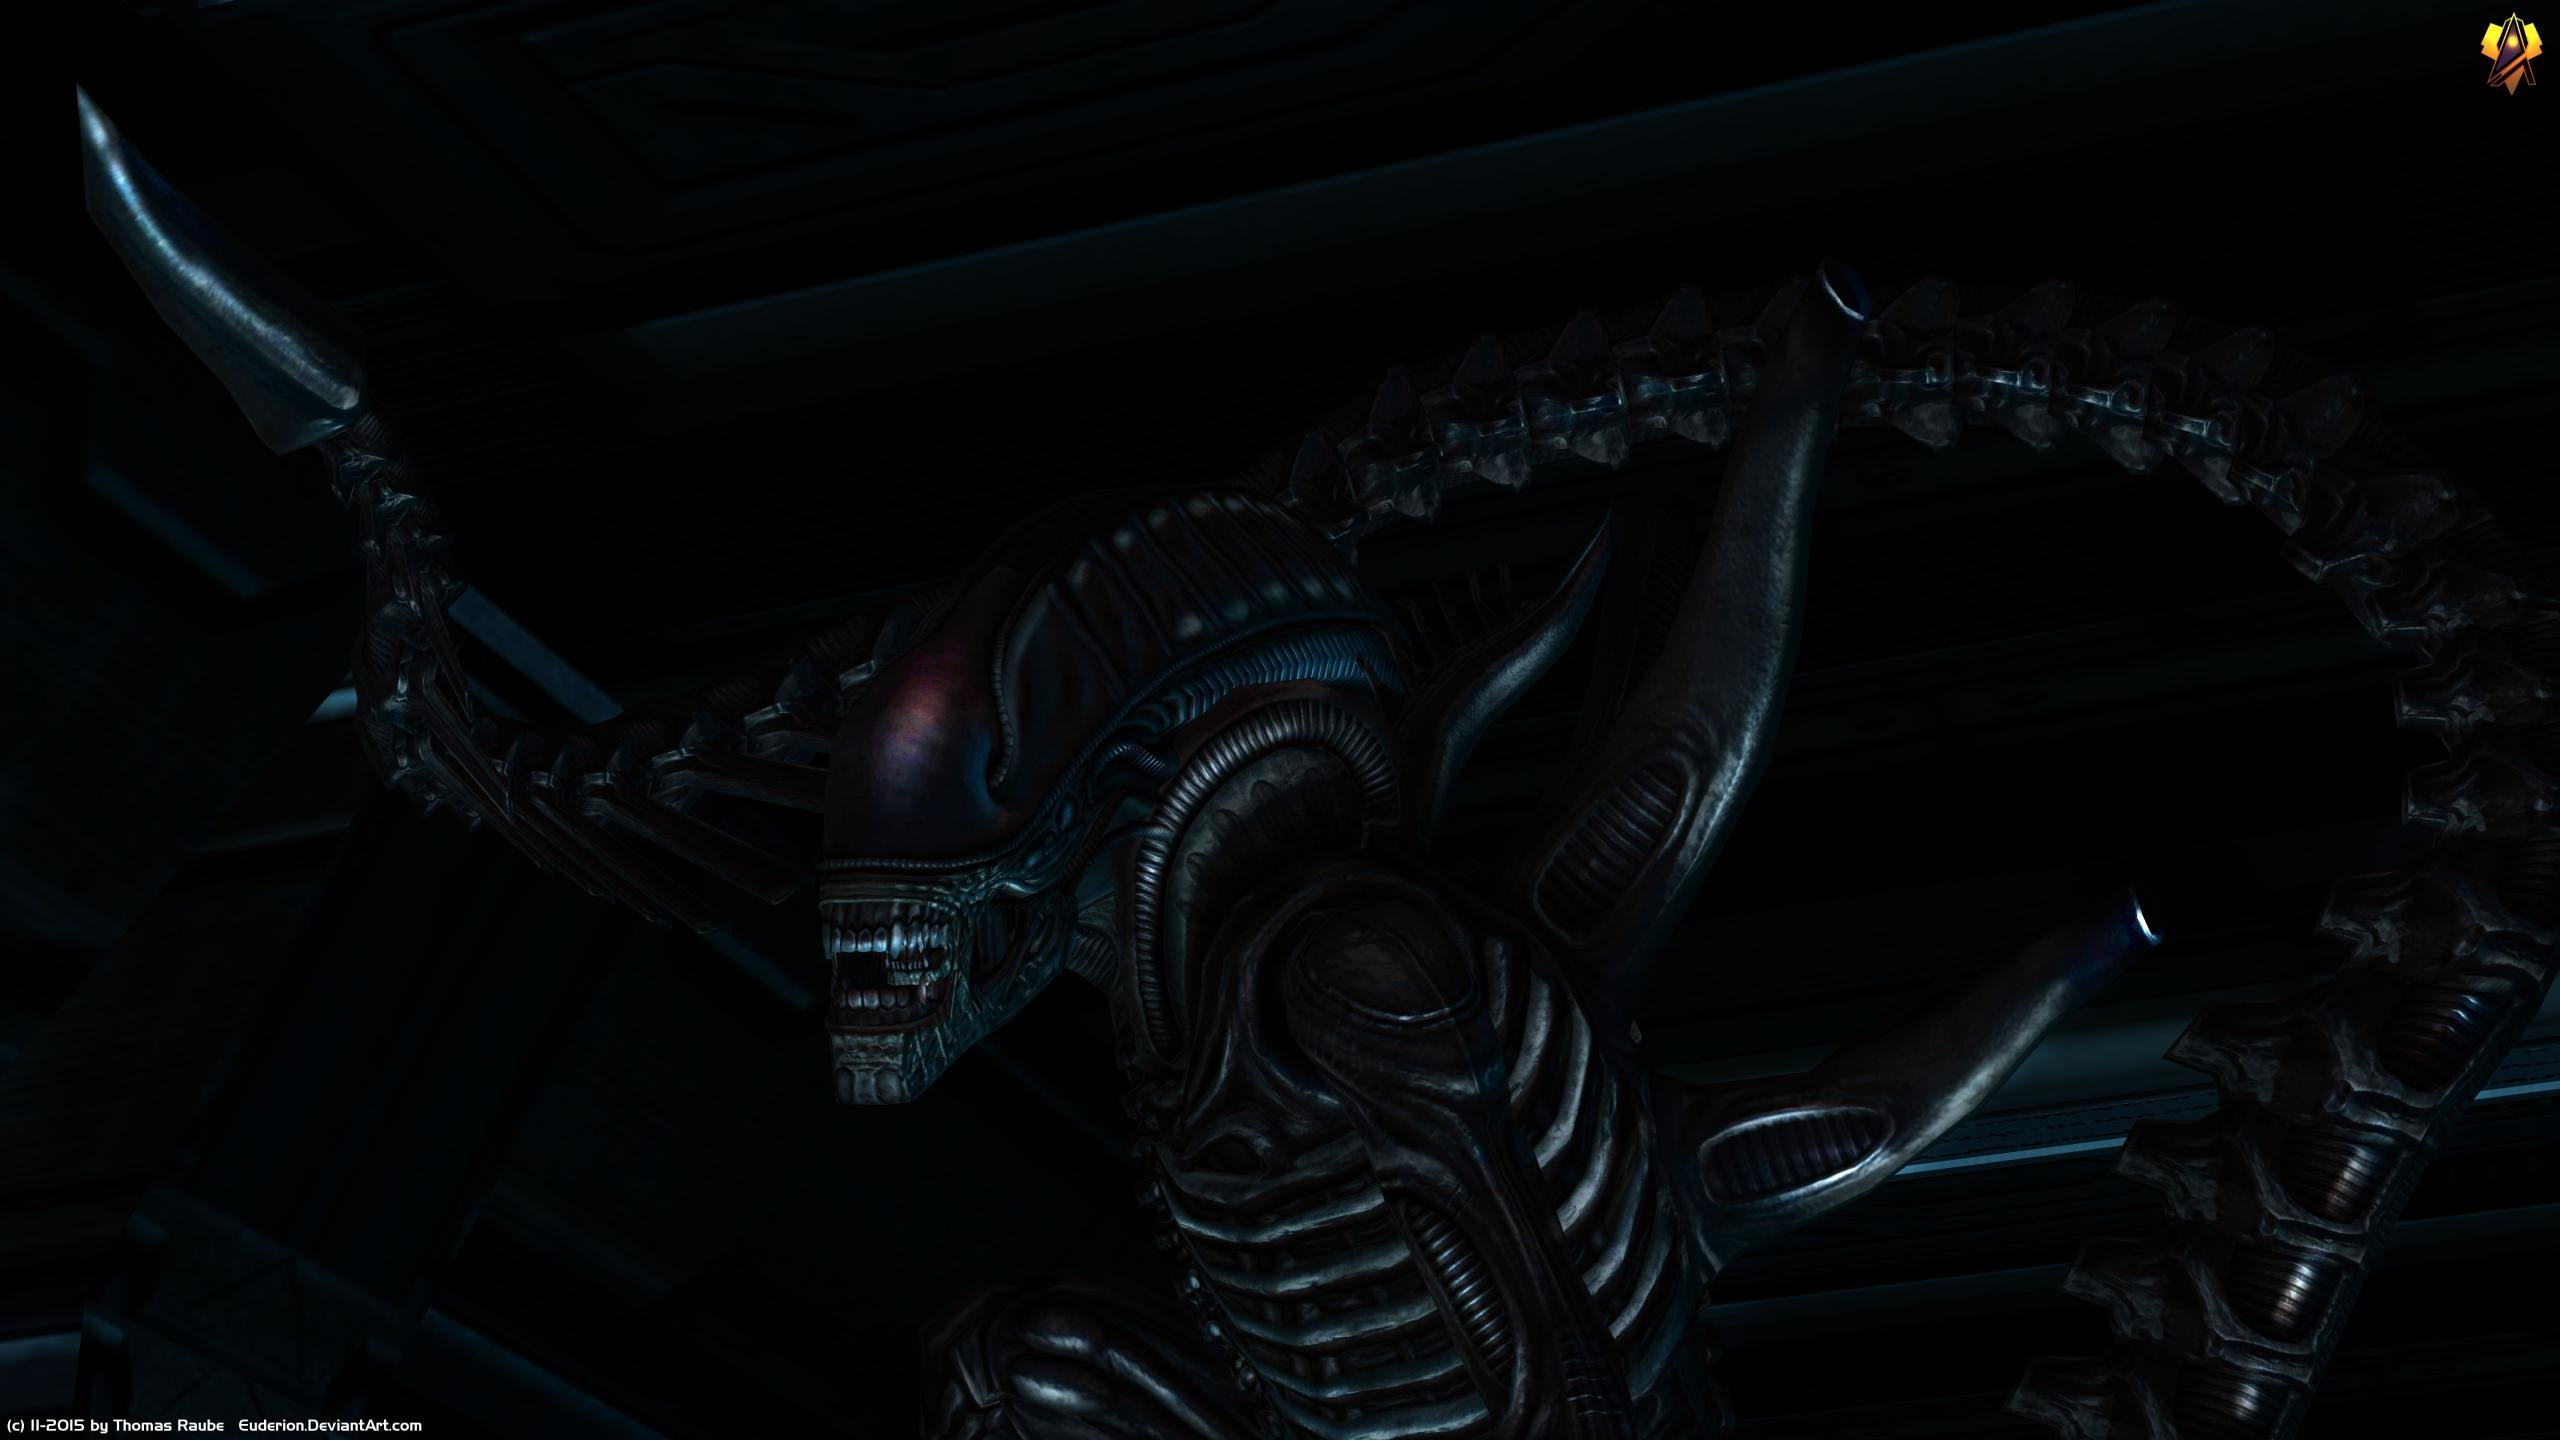 Download hd 2560x1440 Alien Movie computer wallpaper ID:25382 for free